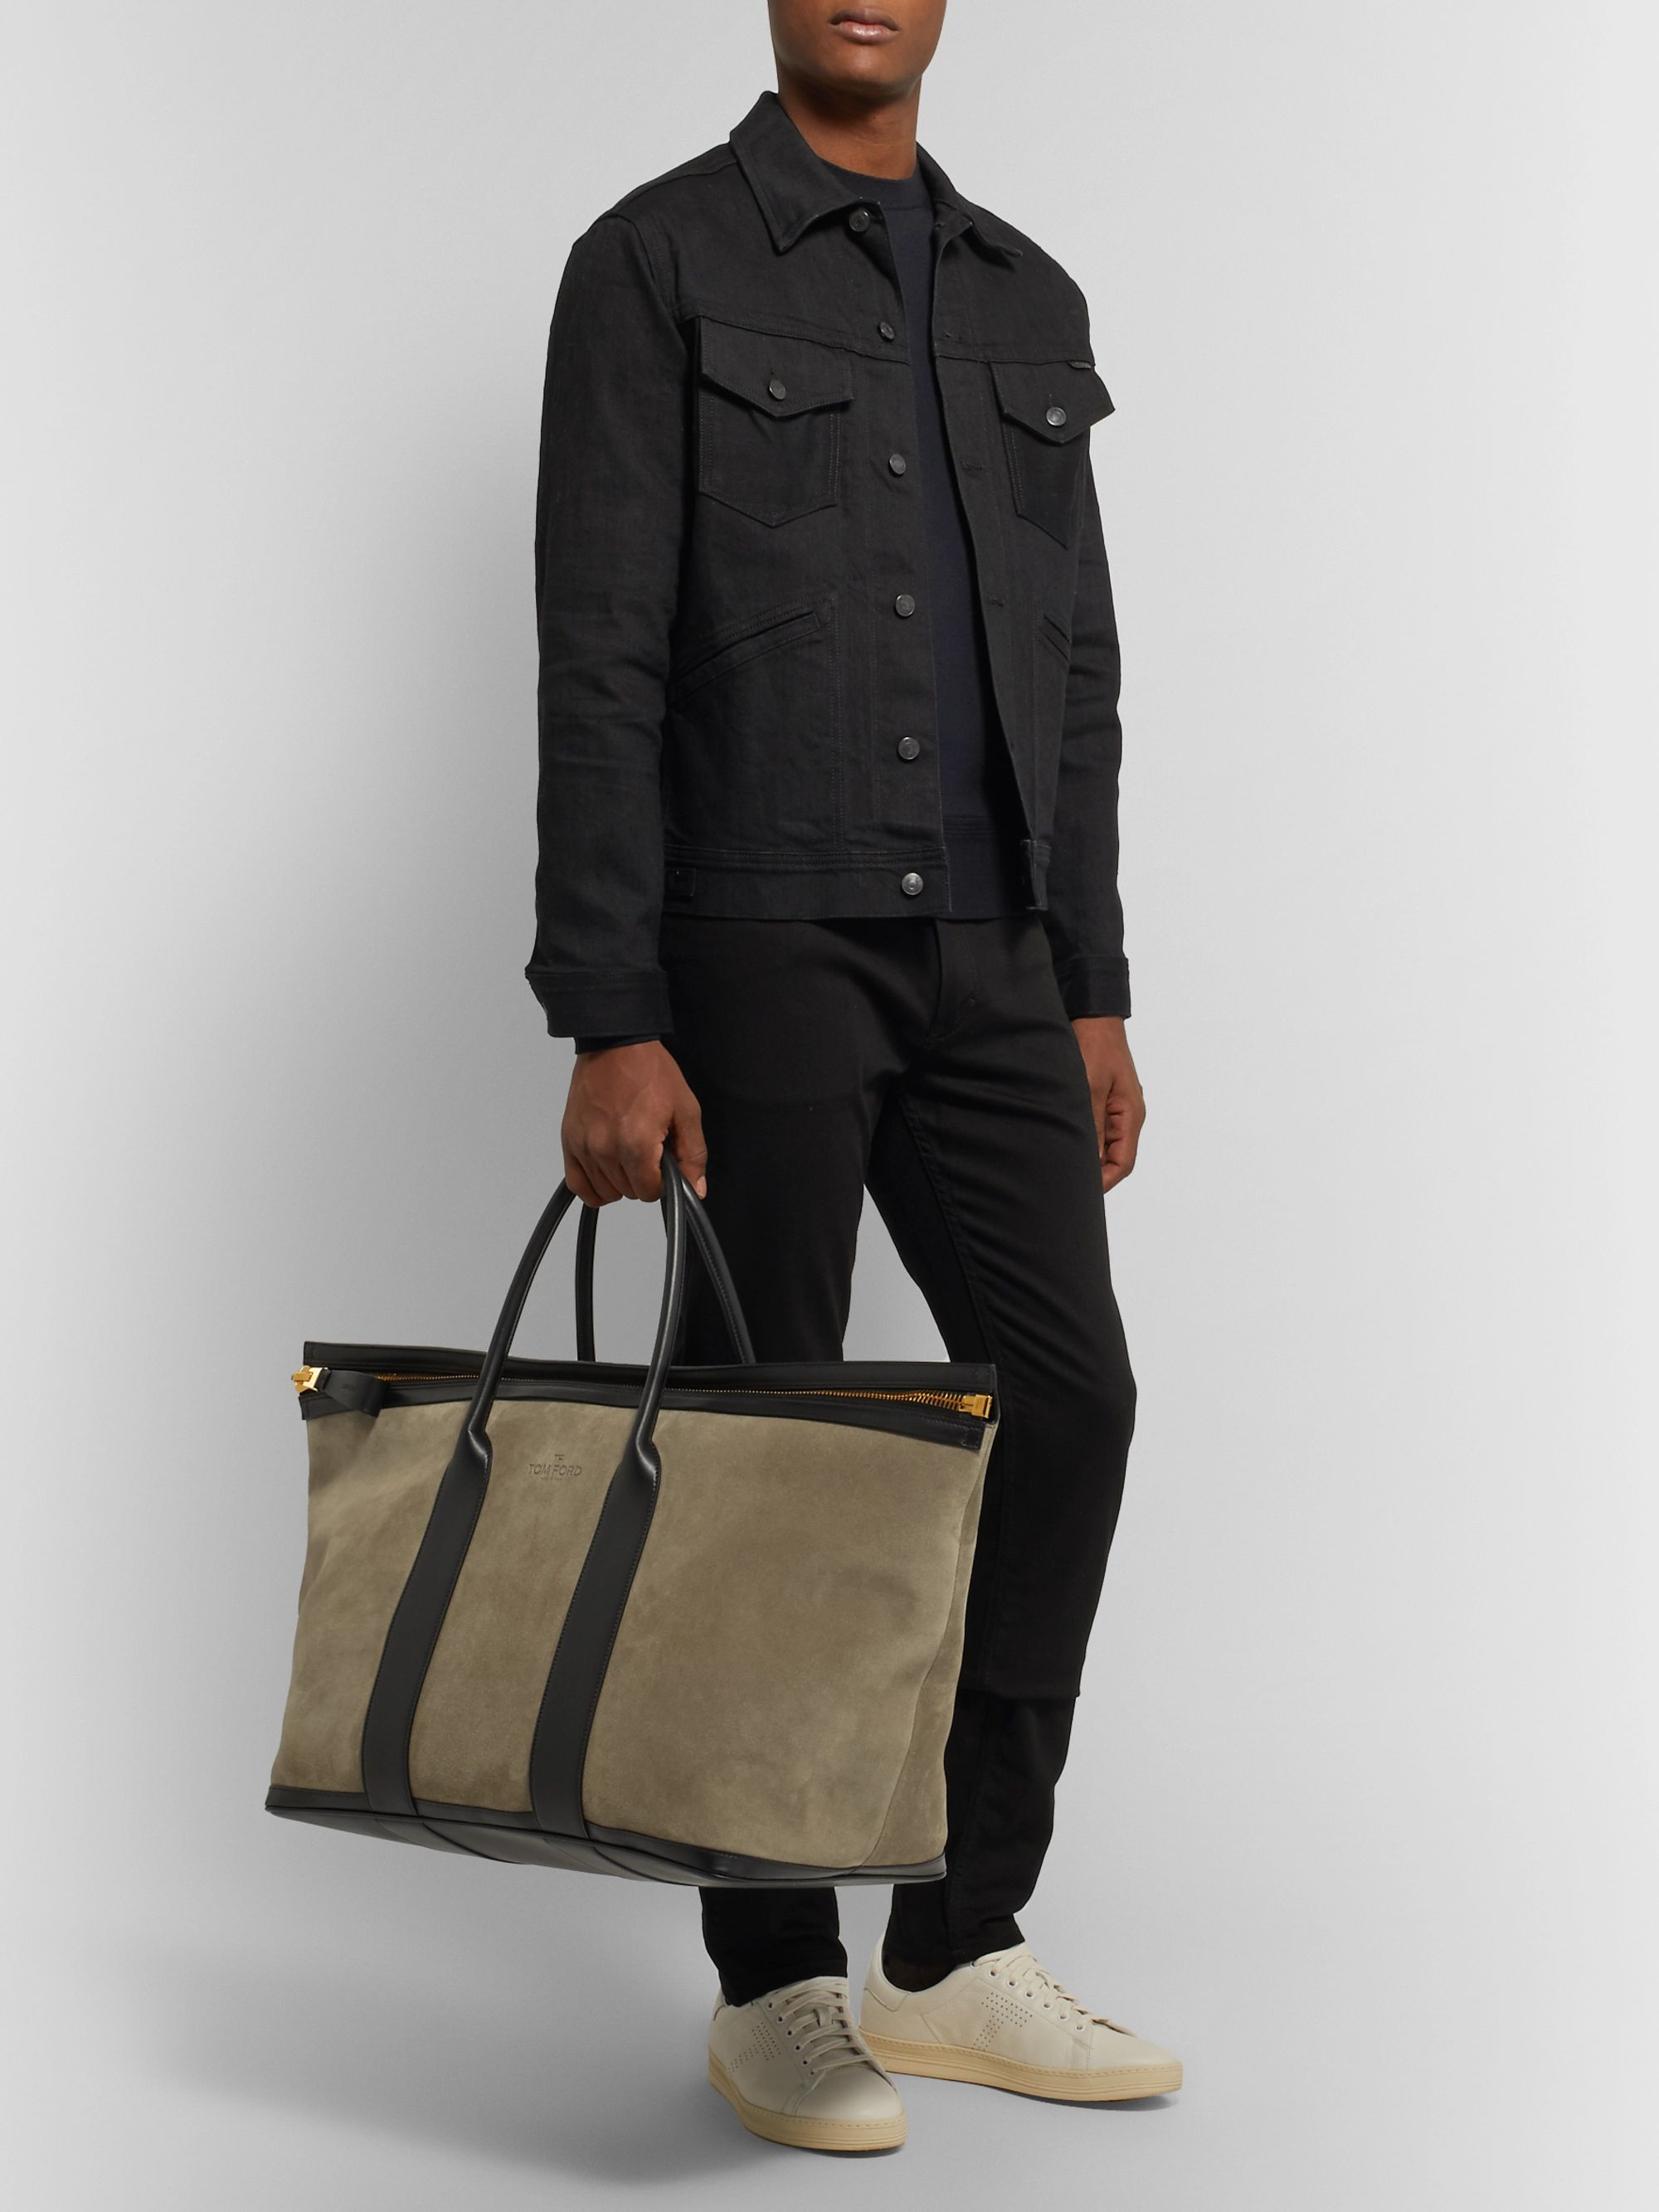 TOM FORD Leather-Trimmed Suede Holdall